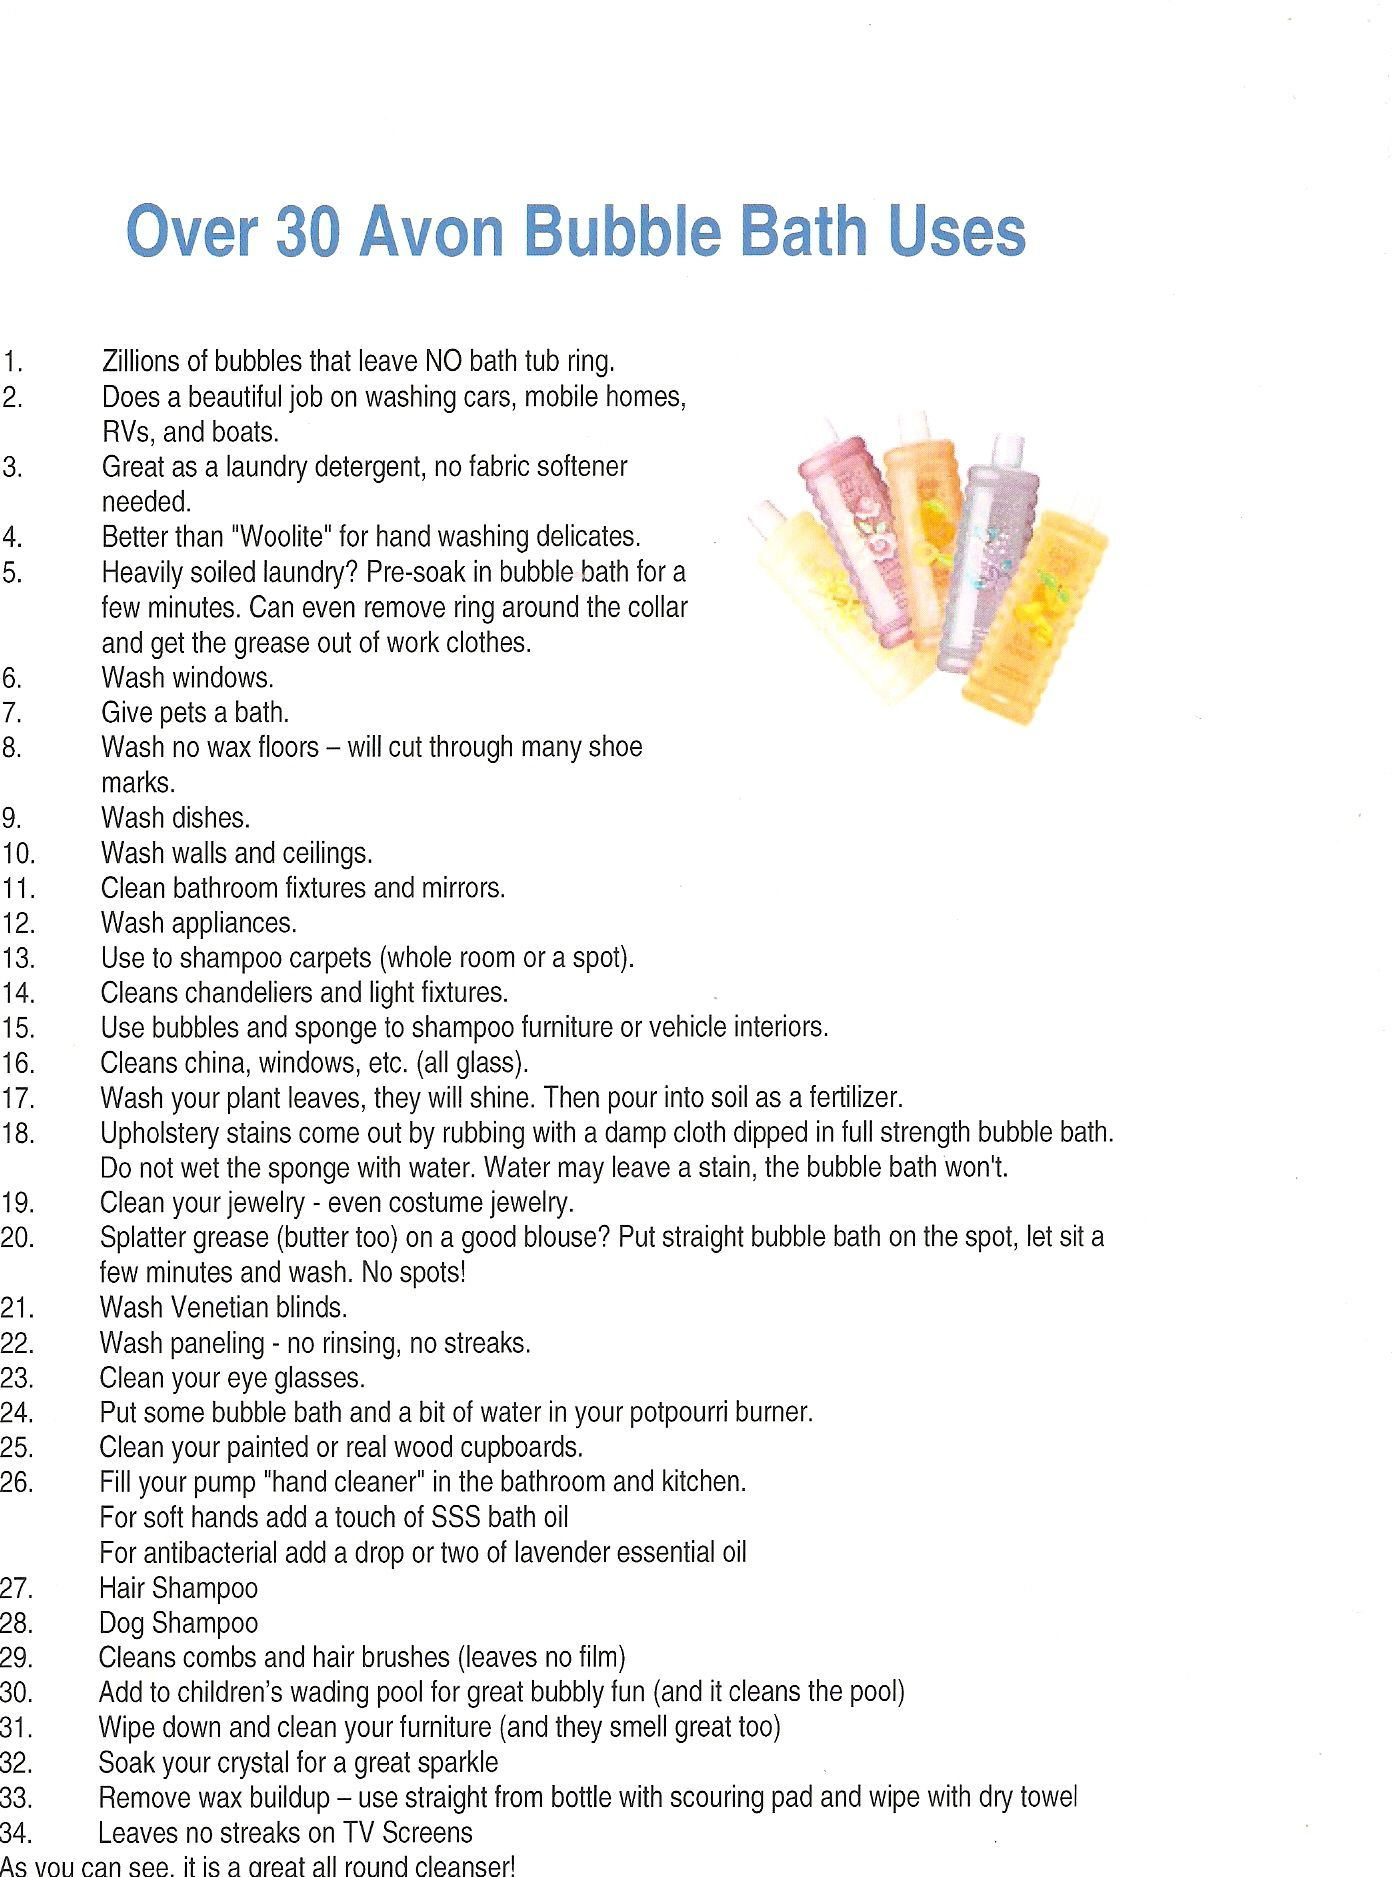 Over 30 Uses For Avon Bubble Bath Get Yours Delivered To You Www Youravon Com Theresacox Avon Bubble Bath Bubbles